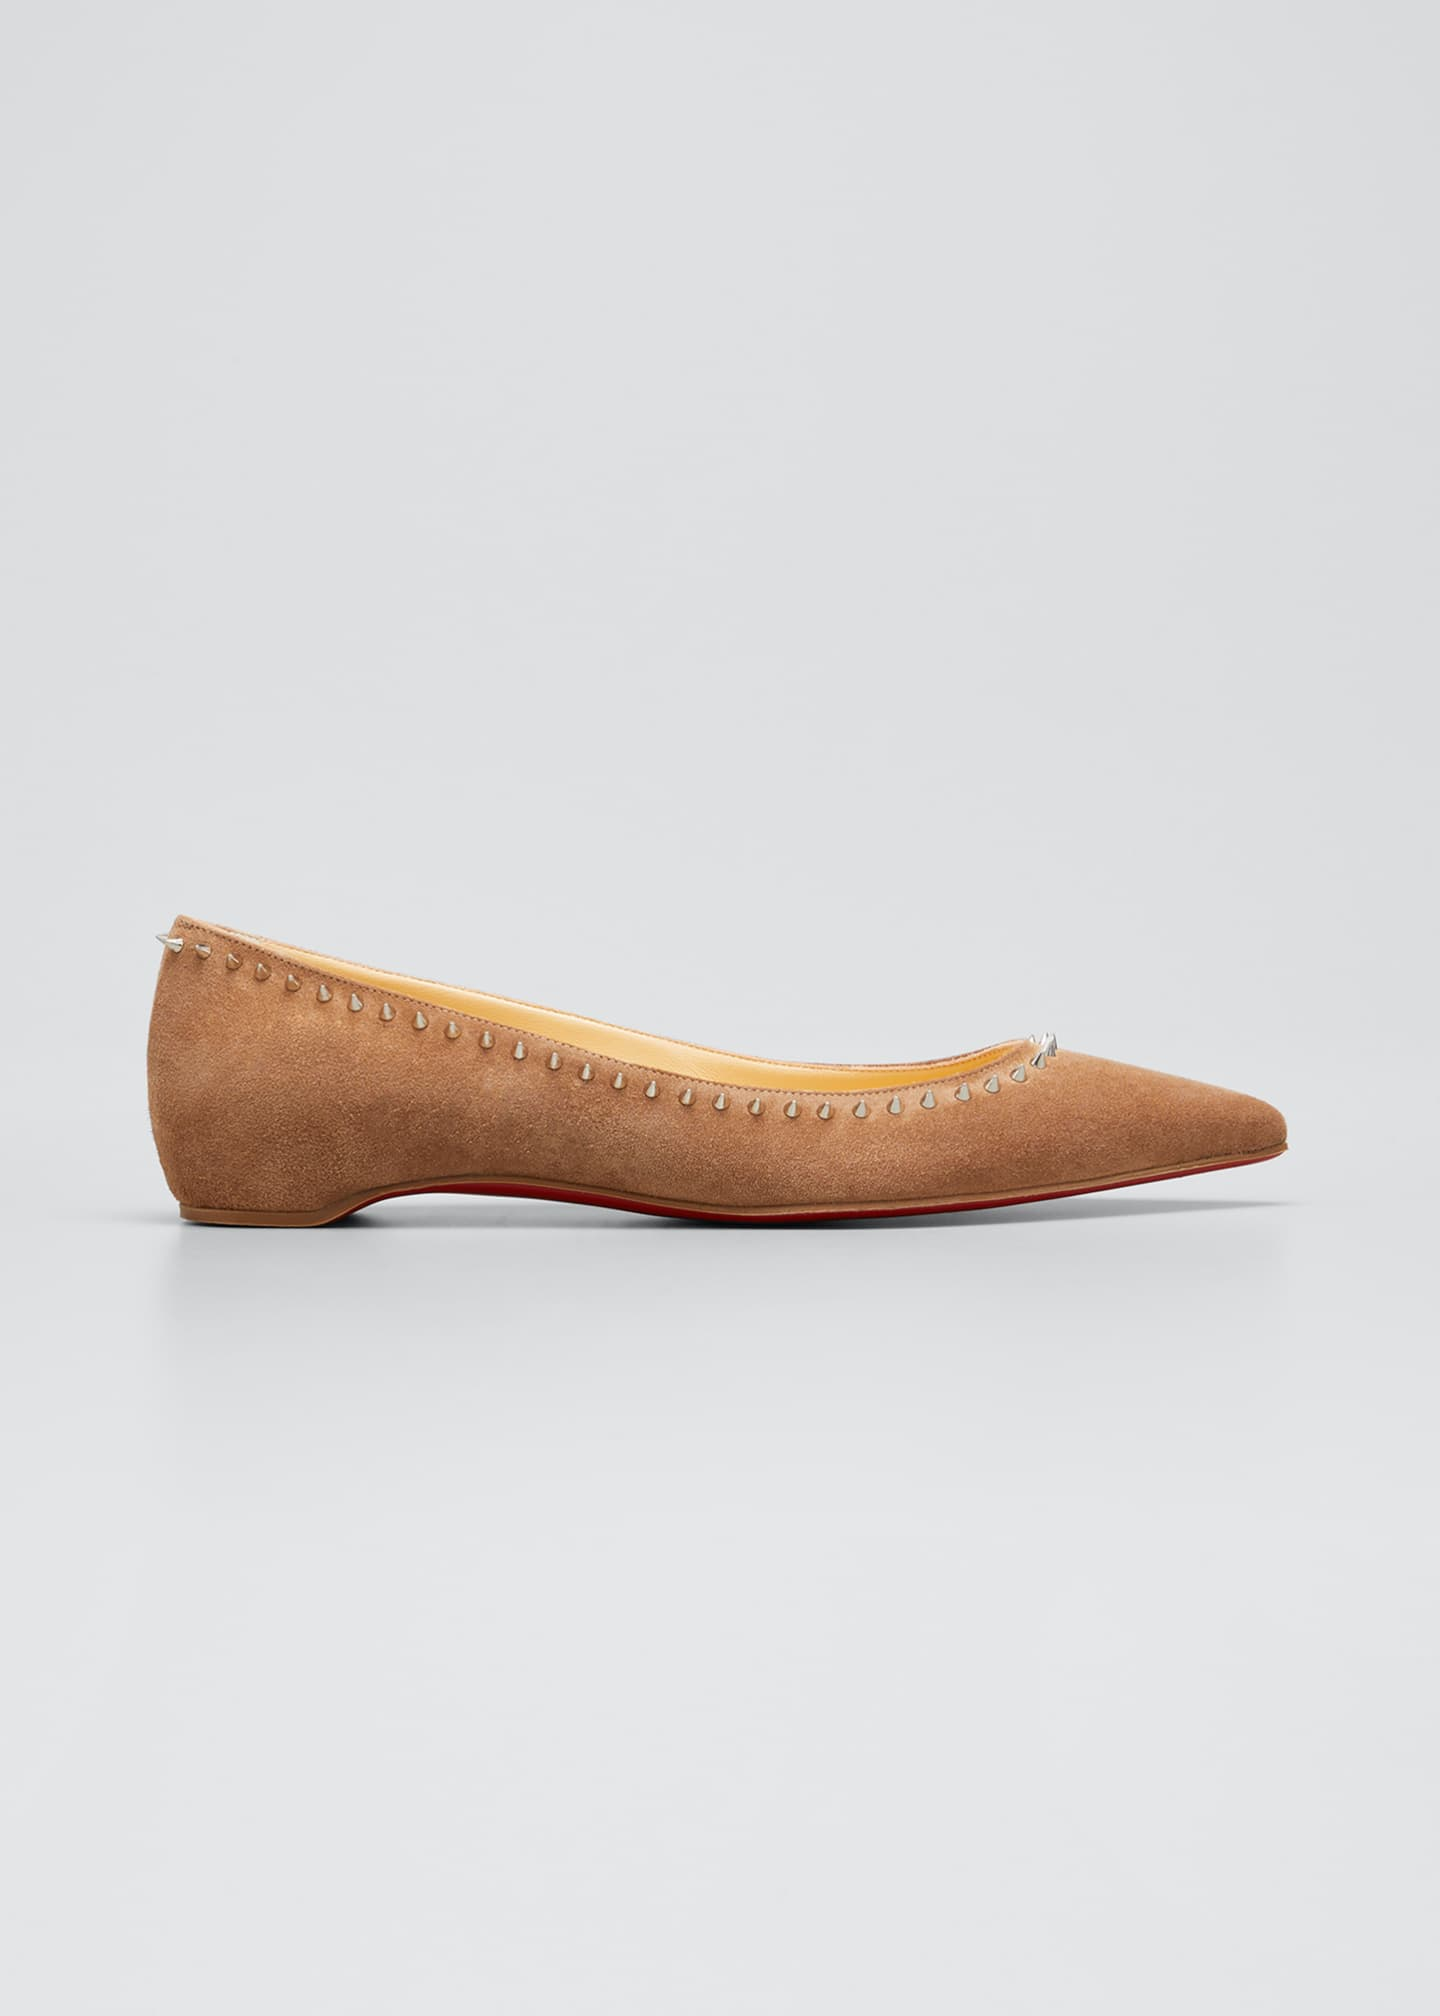 Christian Louboutin Anjalina Spiked Suede Red Sole Ballerina